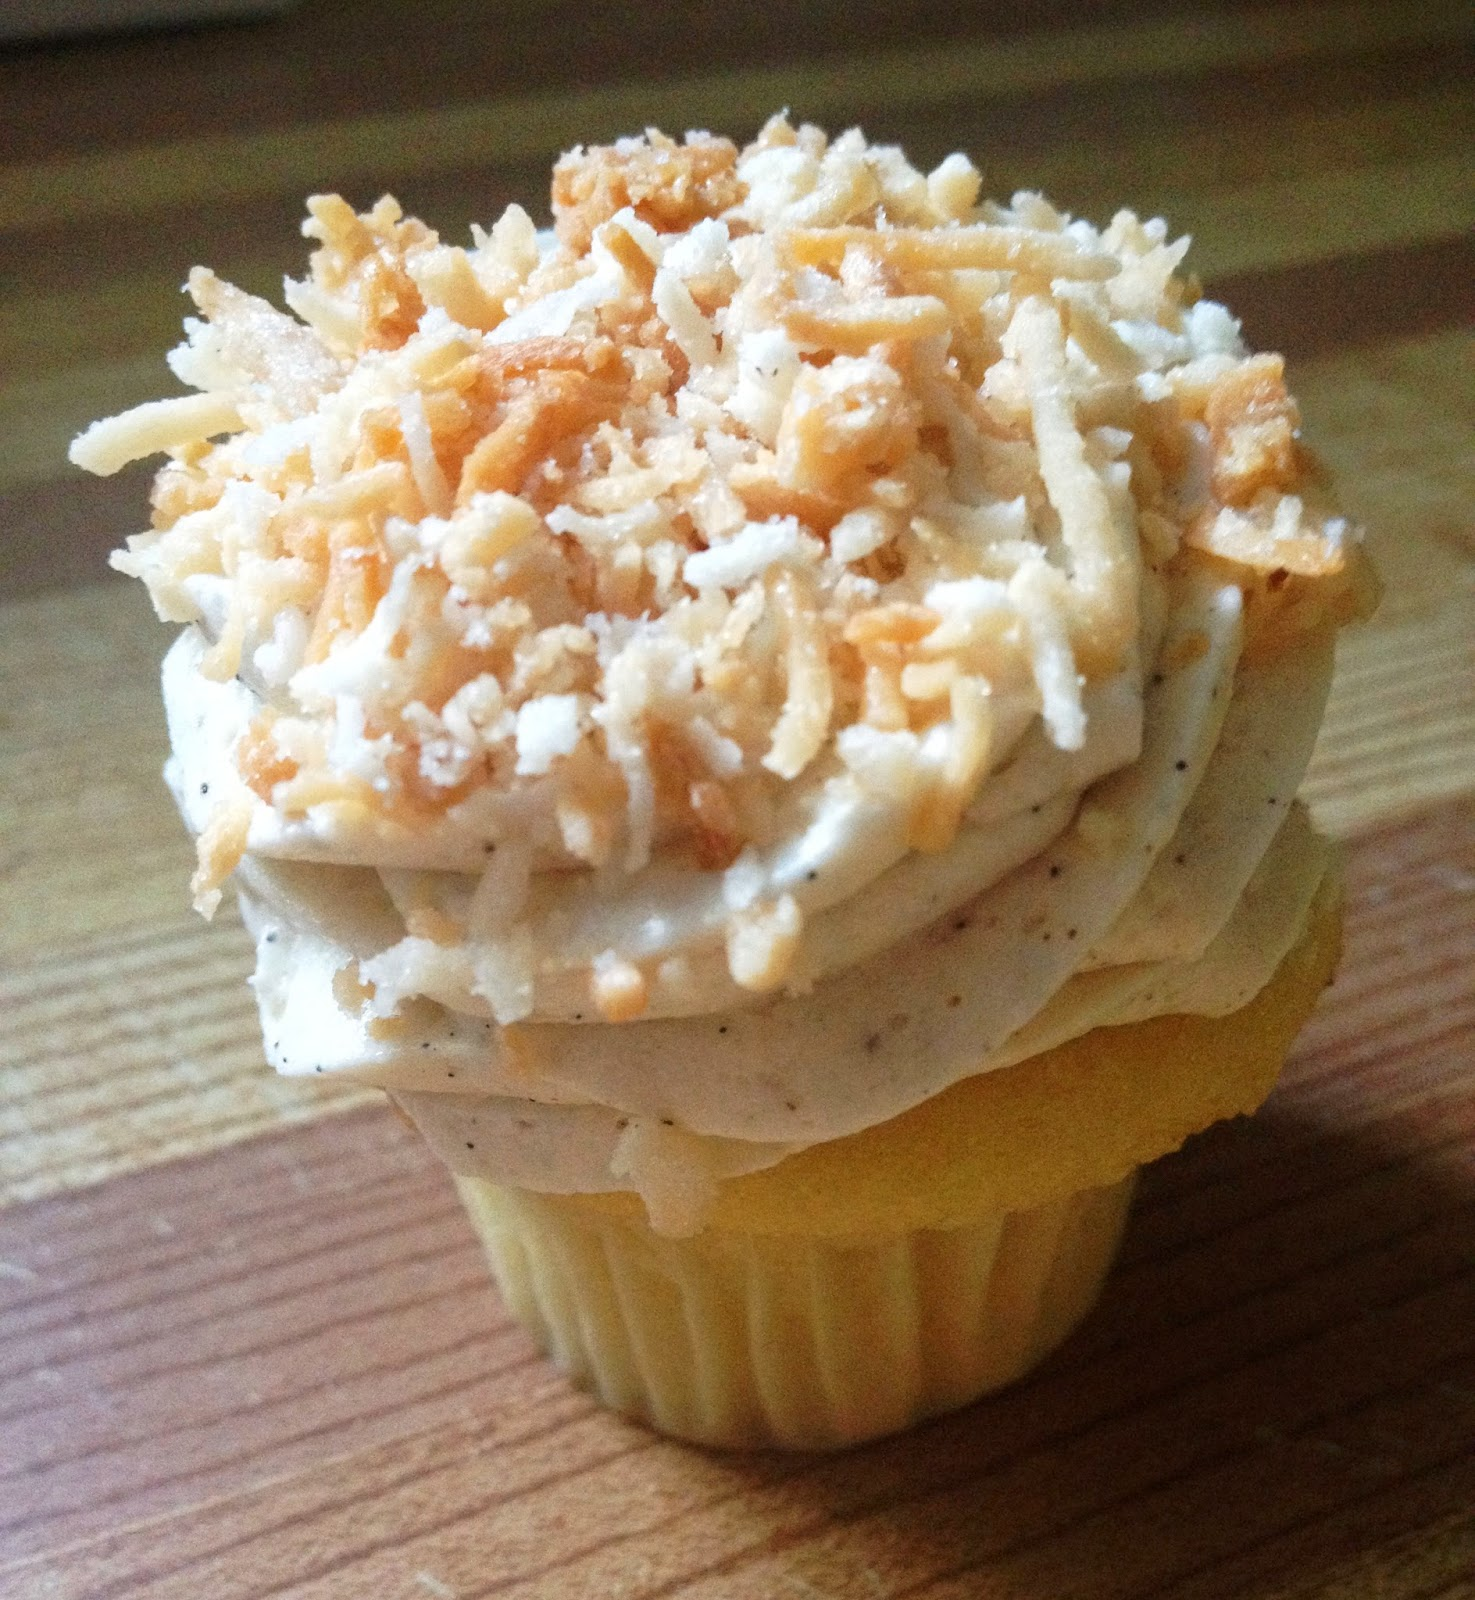 Golden Buttermilk Cupcakes with Vanilla Icing and Topped with Toasted Coconut from Prairie Girl Bakery